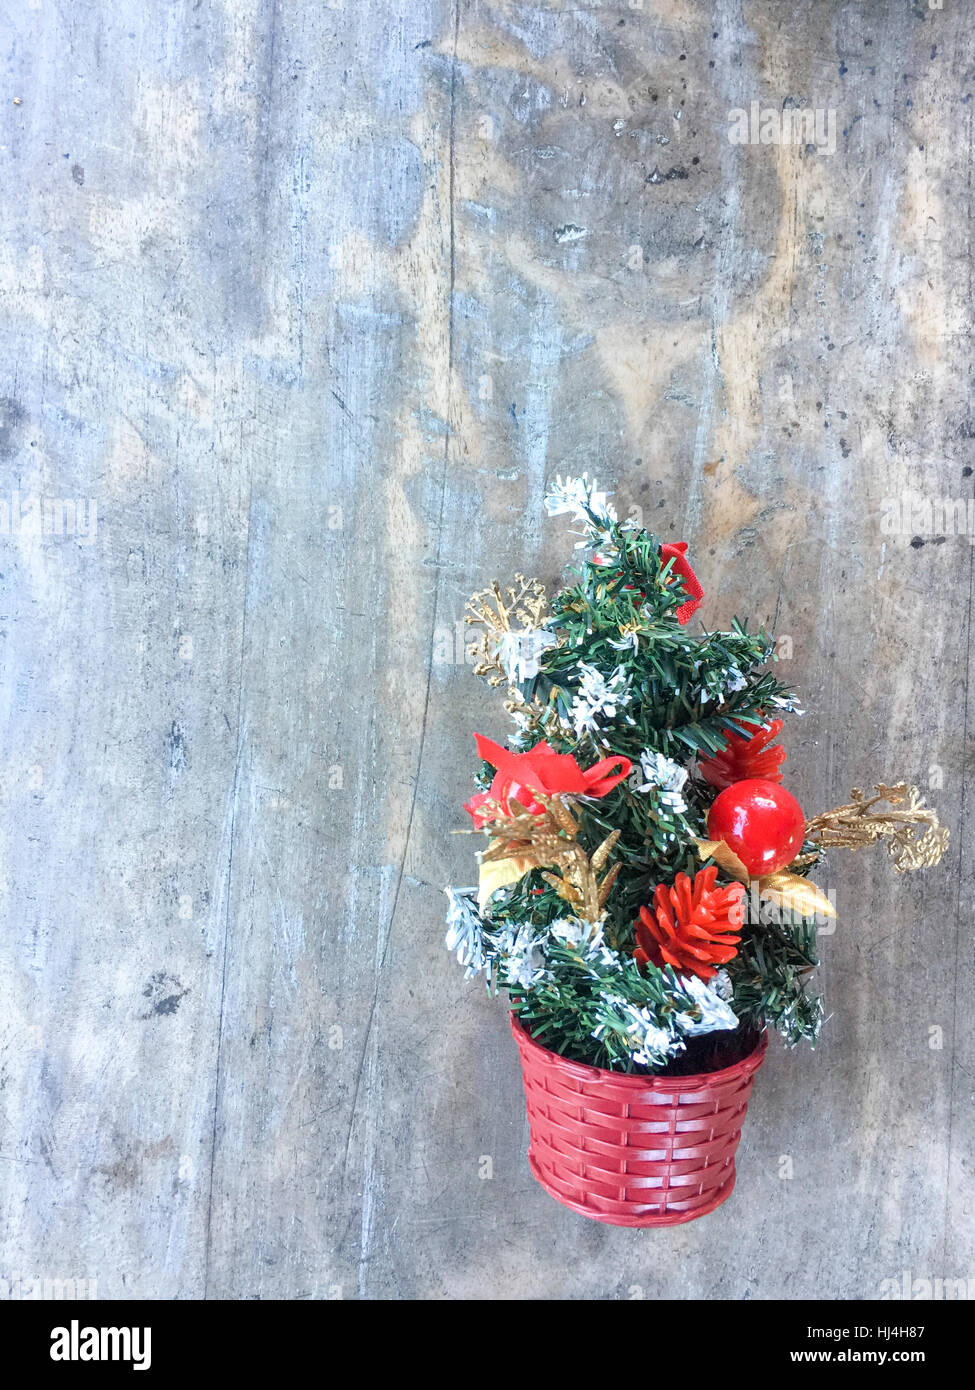 Small Christmas Tree Decoration Hanging On The Wooden Wall Stock Photo Alamy